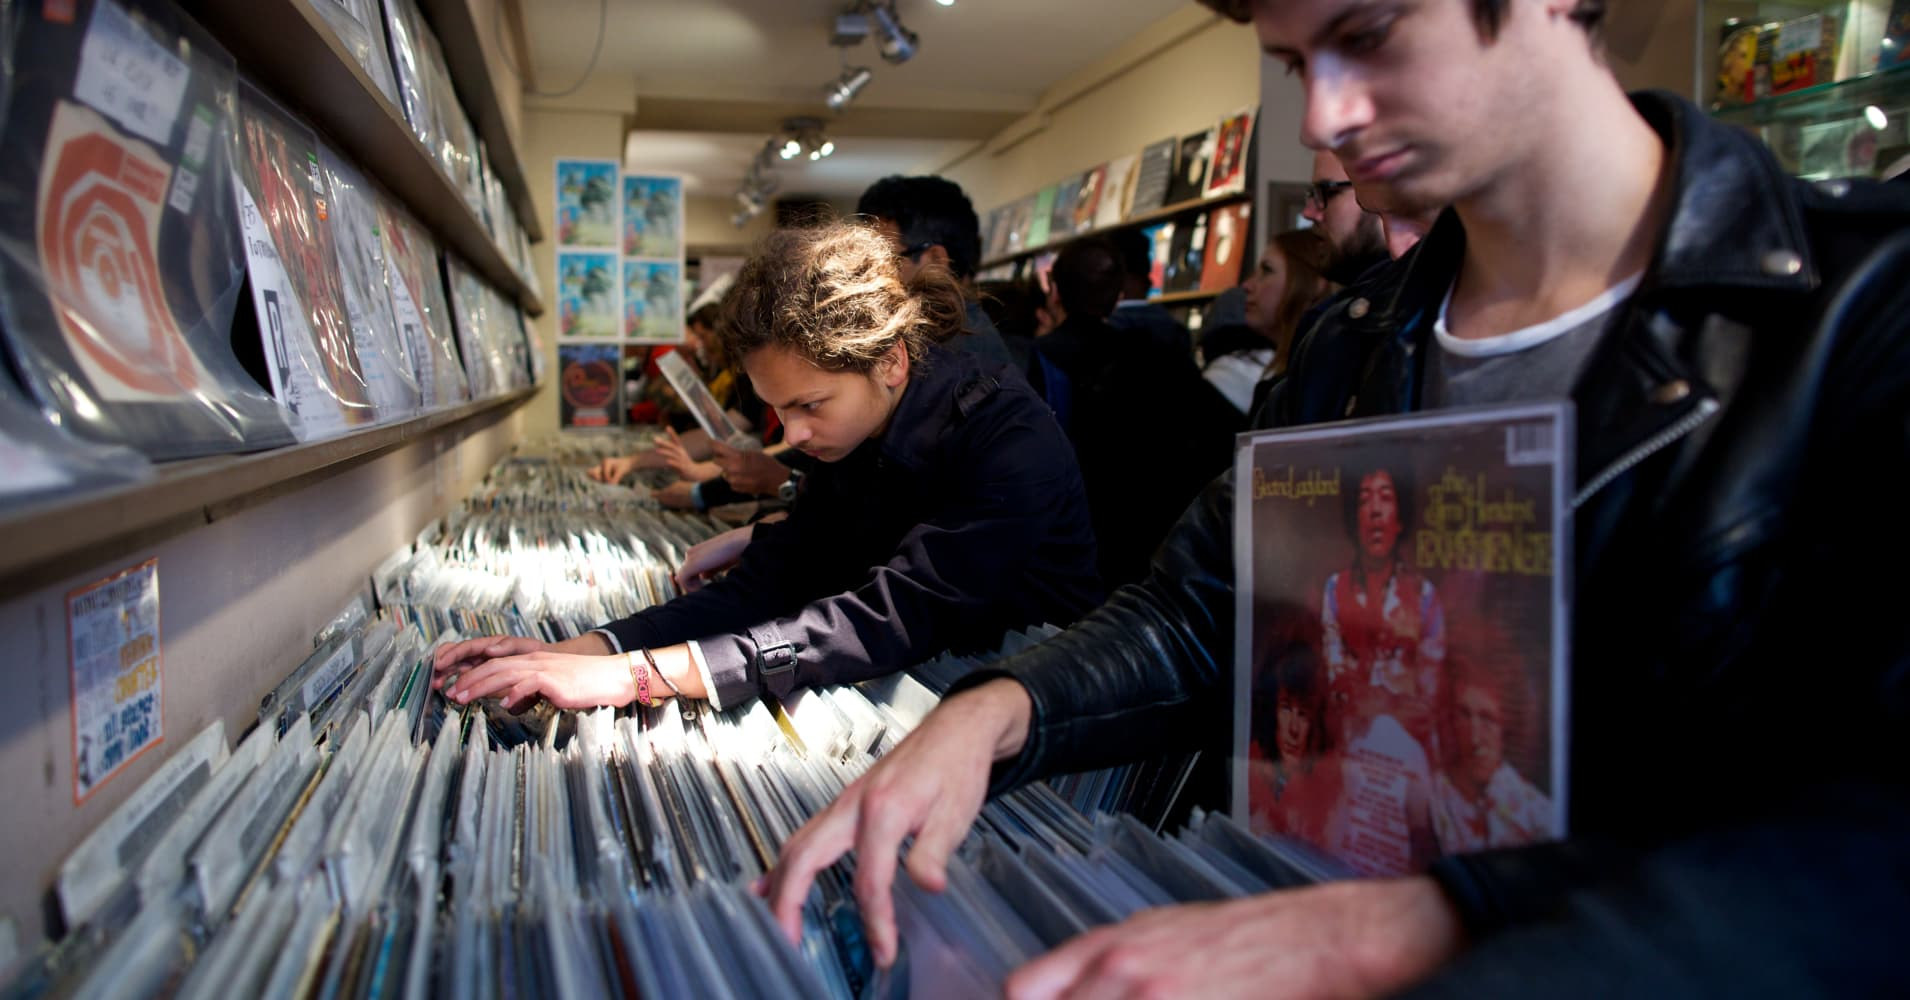 Vinyl is vintage and the future, as new generation warms to an old music form